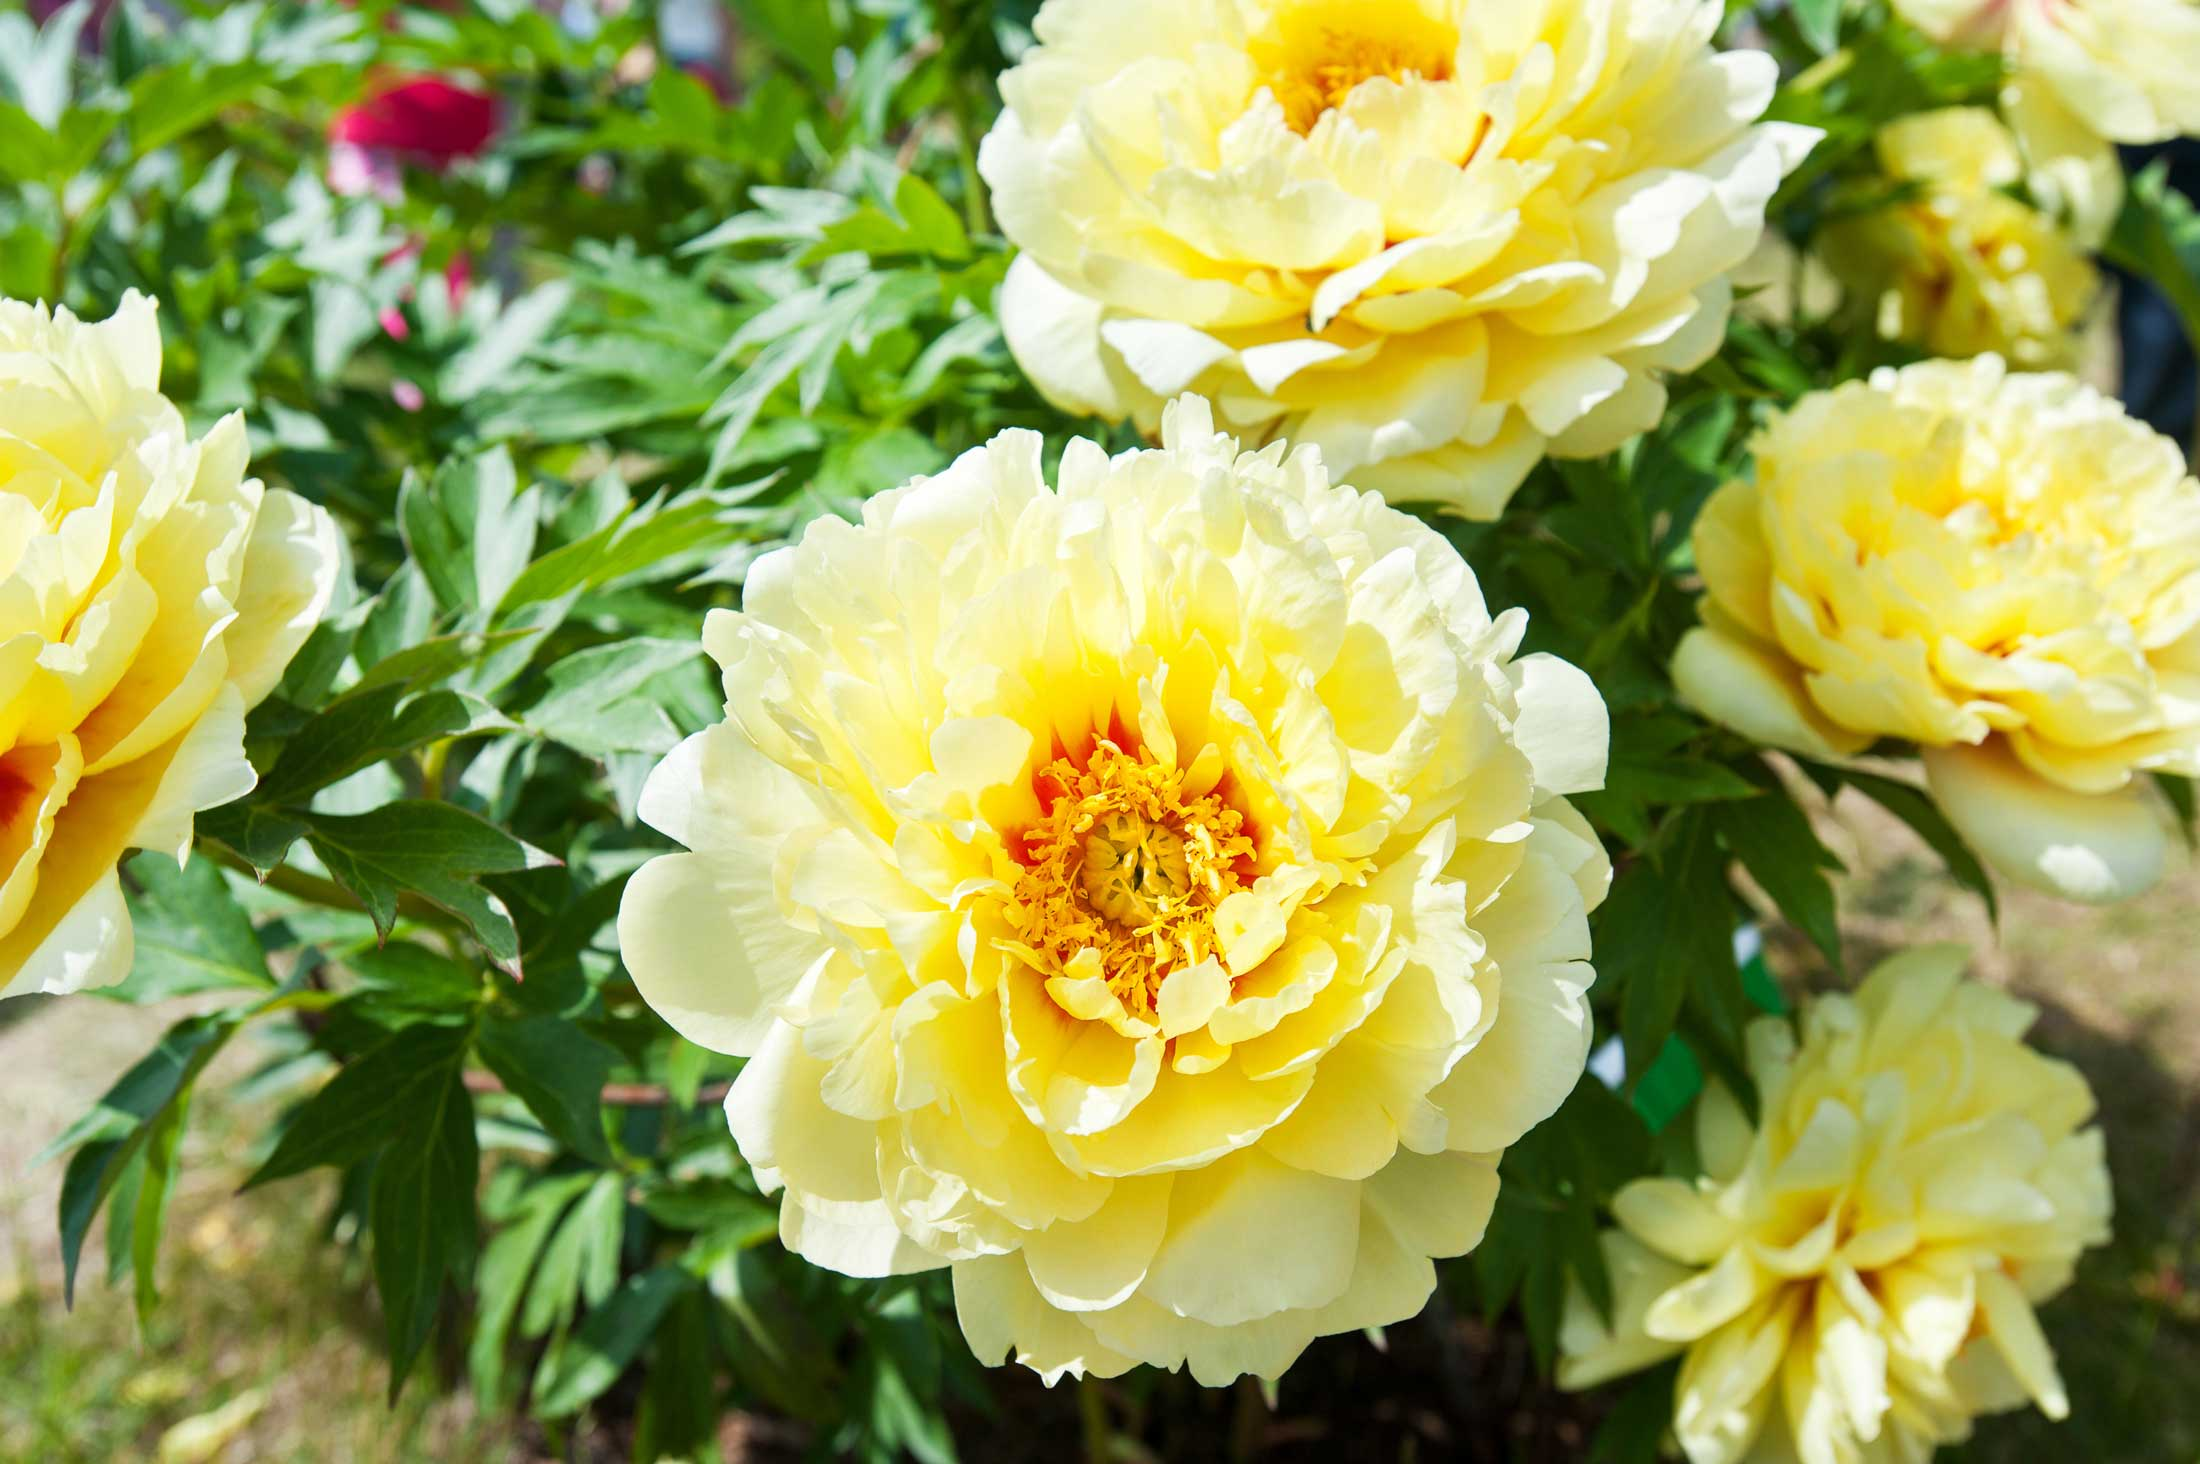 Bartzella: The YELLOW Peony